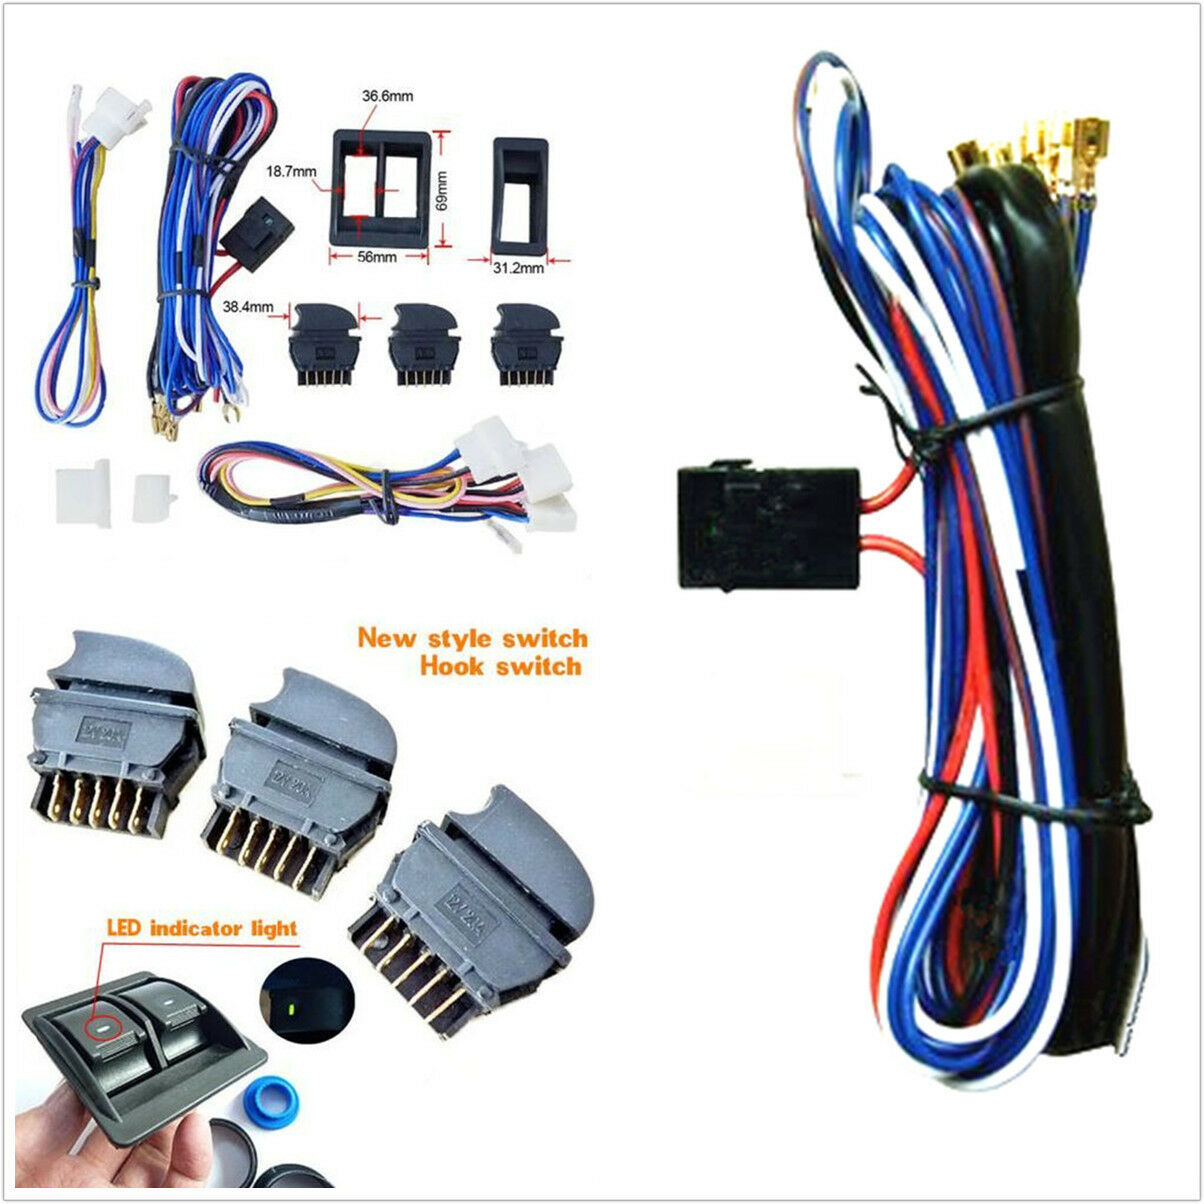 s l1600 diy dc 12v car power electric window switch with wire harness Shoulder Harness at readyjetset.co